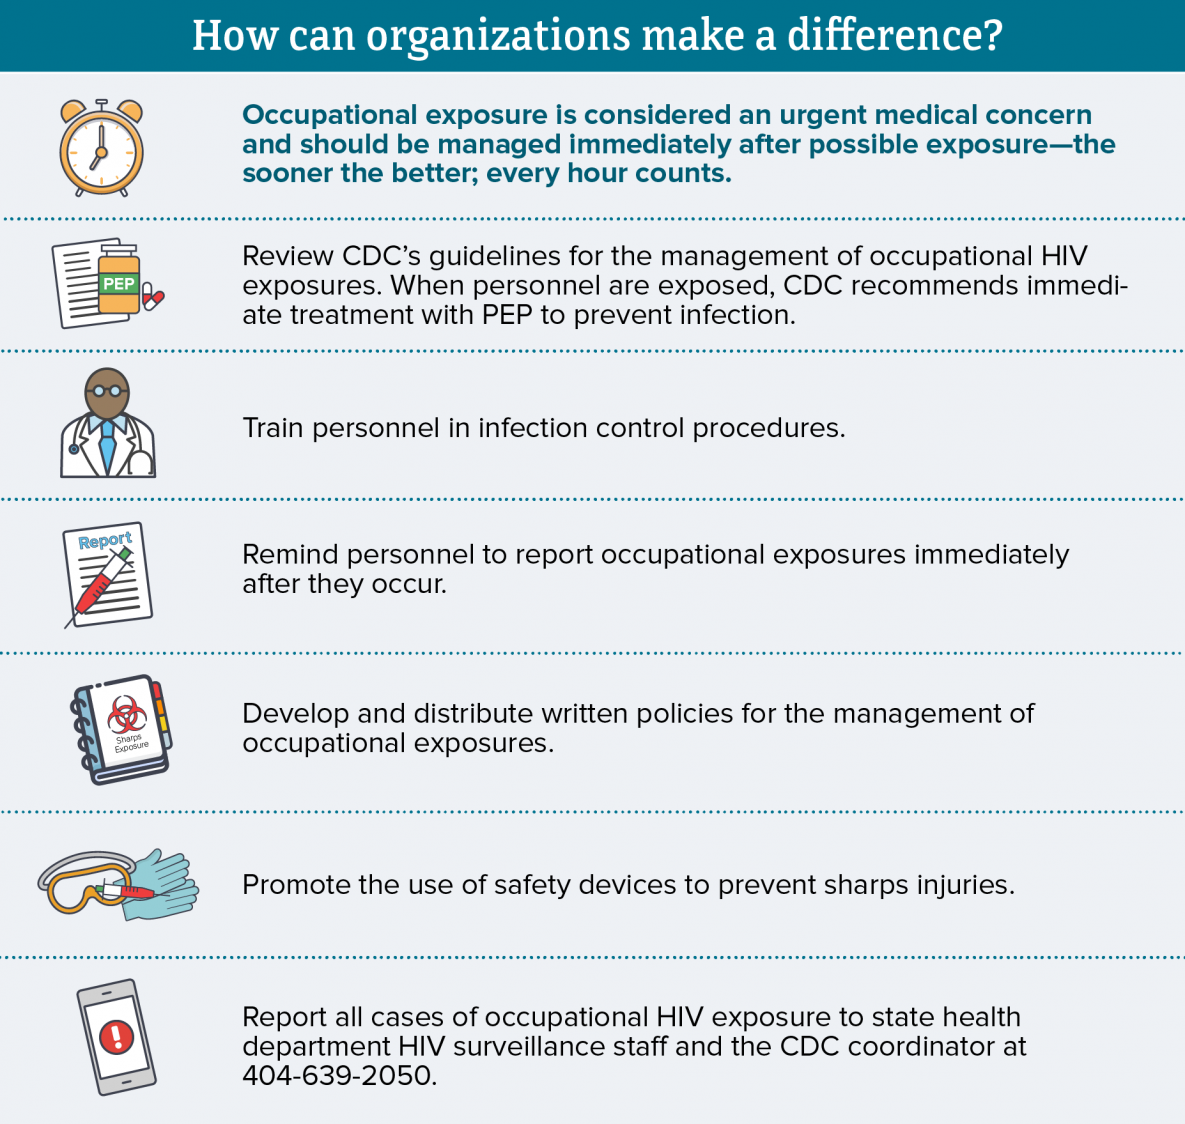 This chart shows how organizations can make a difference. Occupational exposure is considered an urgent medical concern and should be managed immediately after possible exposure – the sooner the better; every hour counts. Review CDC's guidelines for the management of occupational HIV exposures. When personnel are exposed, CDC recommends immediate treatment with PEP to prevent infection. Train personnel in infection control procedures. Remind personnel to report occupational exposures immediately after they occur. Develop and distribute written policies for the management of occupational exposures. Promote the use safety devices to prevent sharps injuries. Report all cases of occupational HIV exposure to state health department HIV surveillance staff and the CDC coordinator at 404-639-2050.